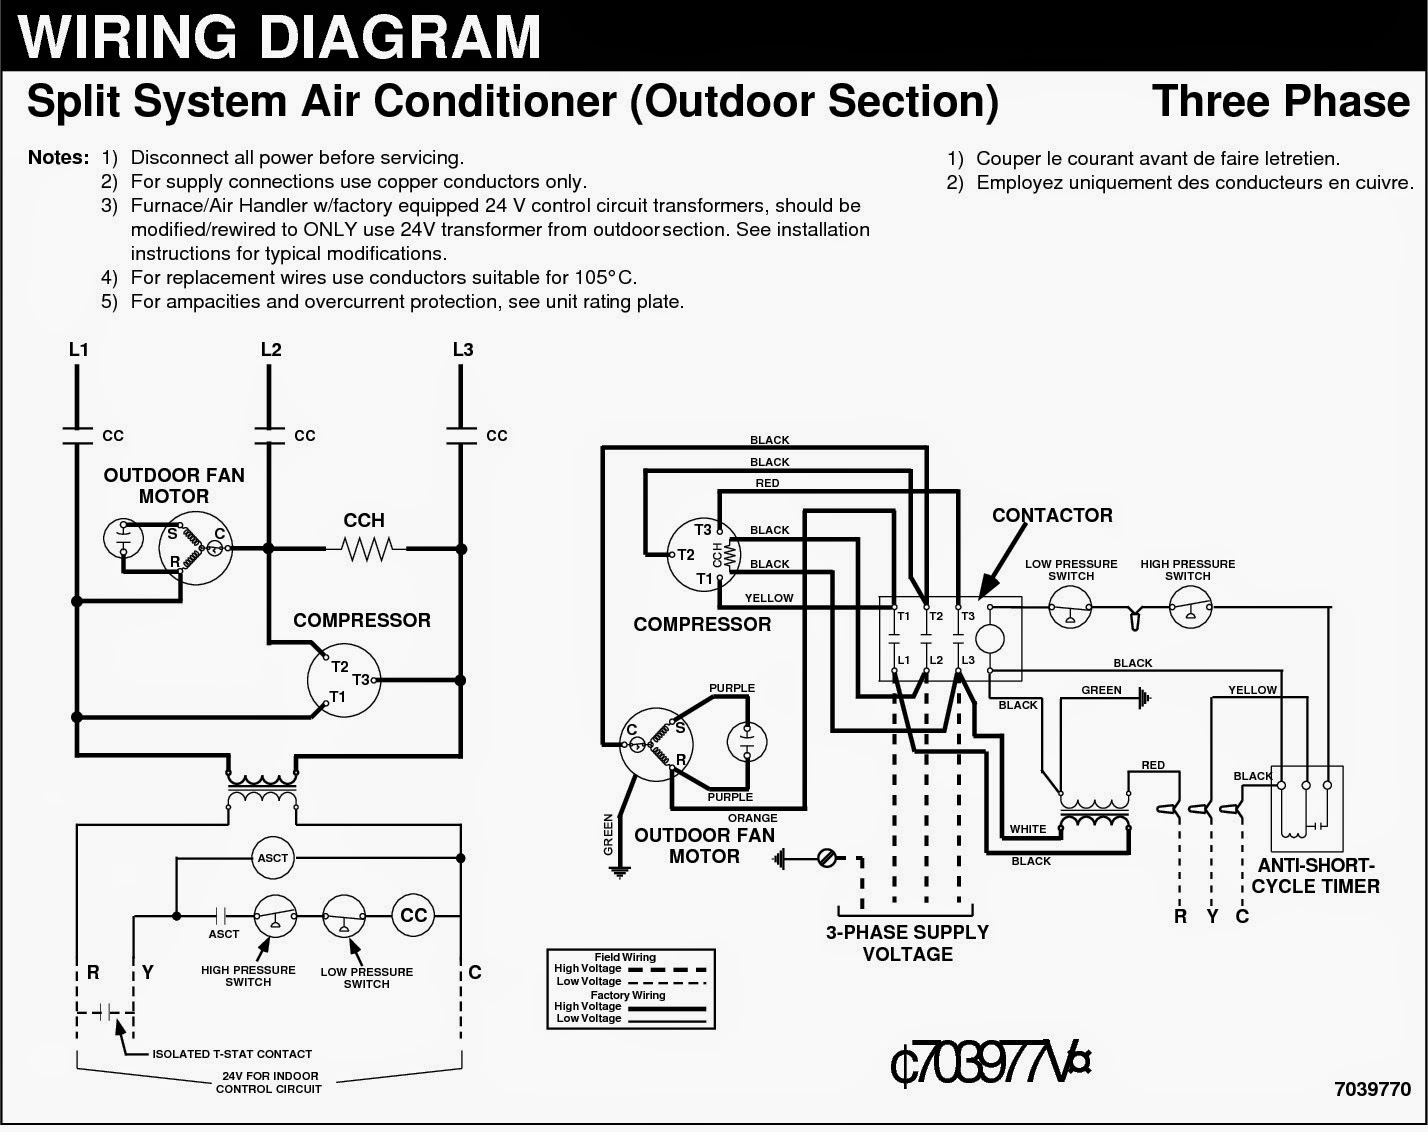 3+phase electrical wiring diagrams for air conditioning systems part two ac compressor wiring diagram at mifinder.co